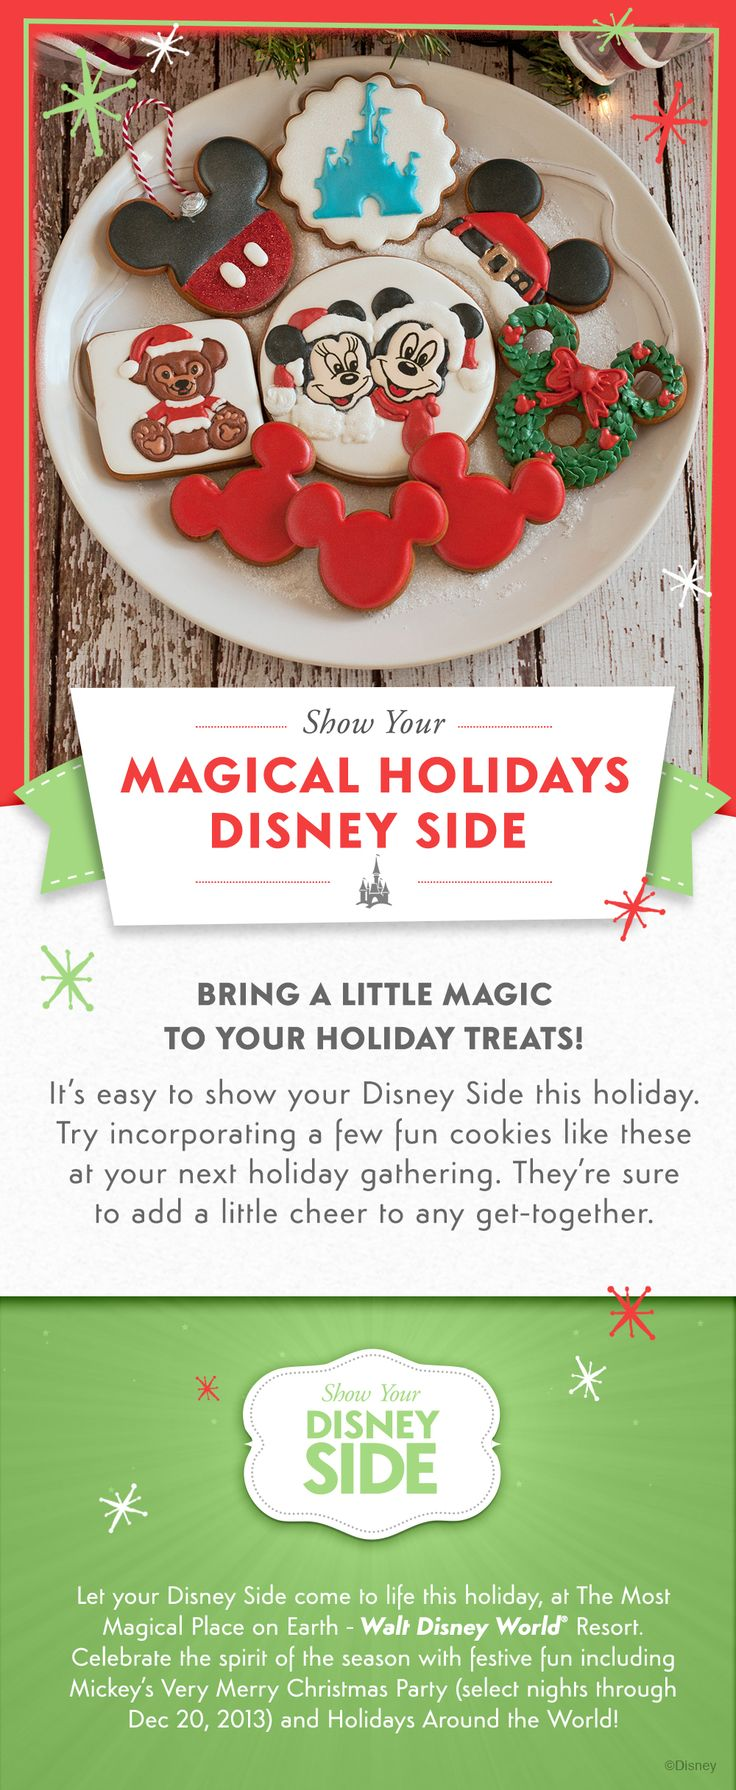 It's easy to show your #DisneySide this holiday with these fun Christmas cookies!